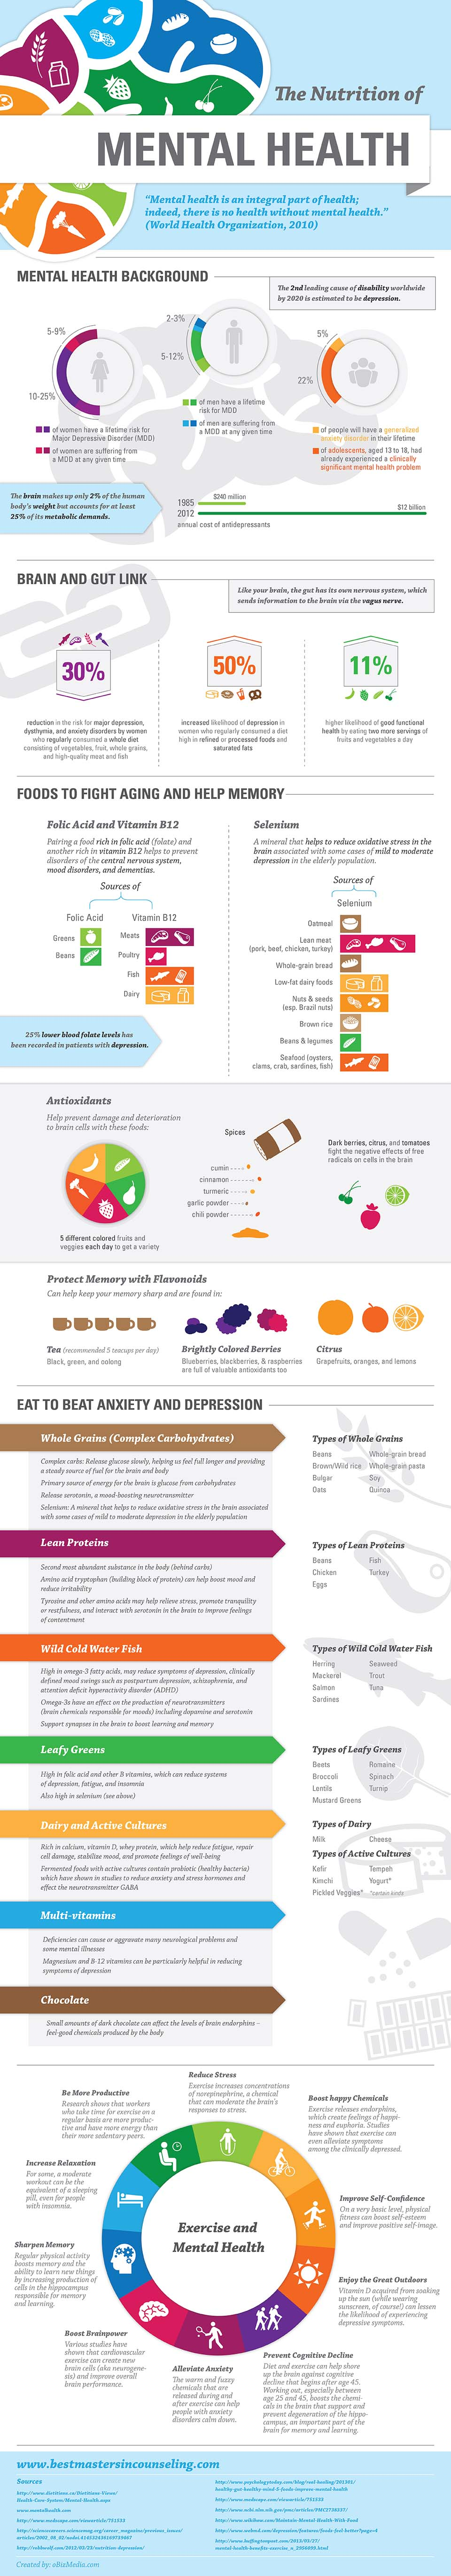 The Deep Connection Between Nutrition and Mental Health - Infographic